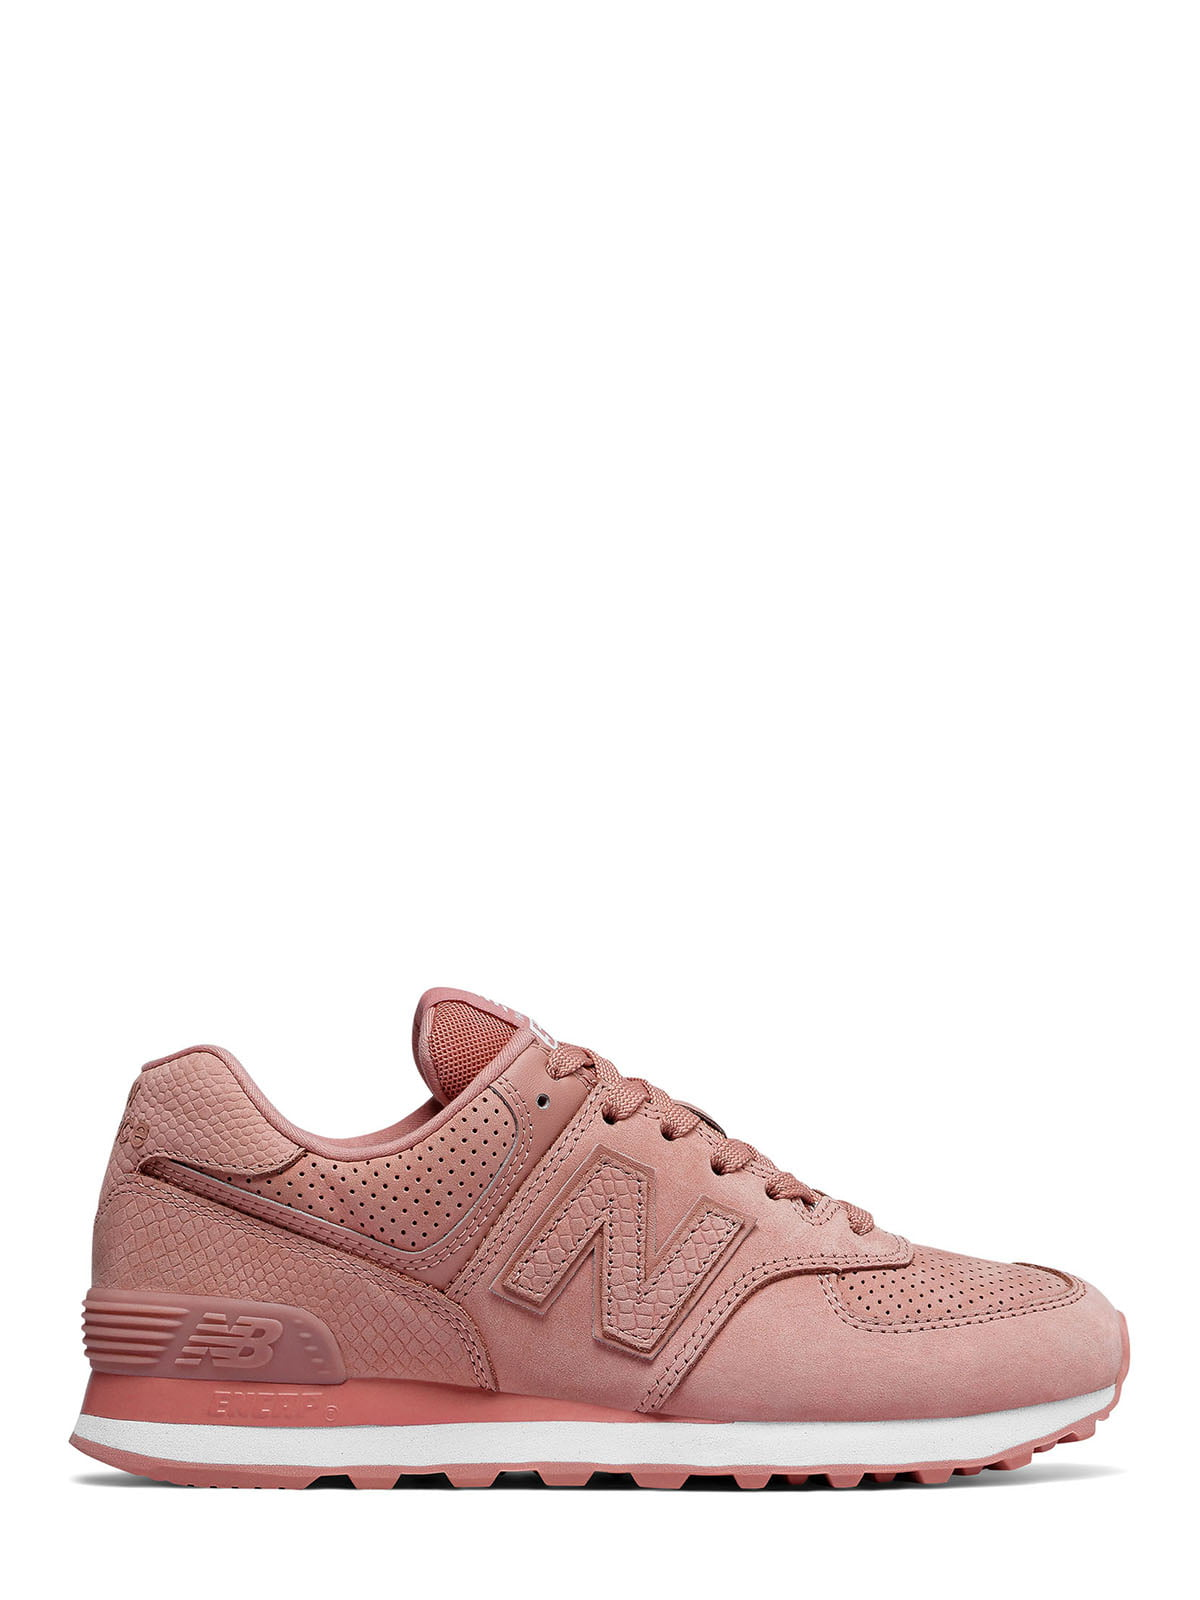 sneakers for cheap f10fe 1ef49 Кроссовки розовые New Balance 574 Serpent Luxe